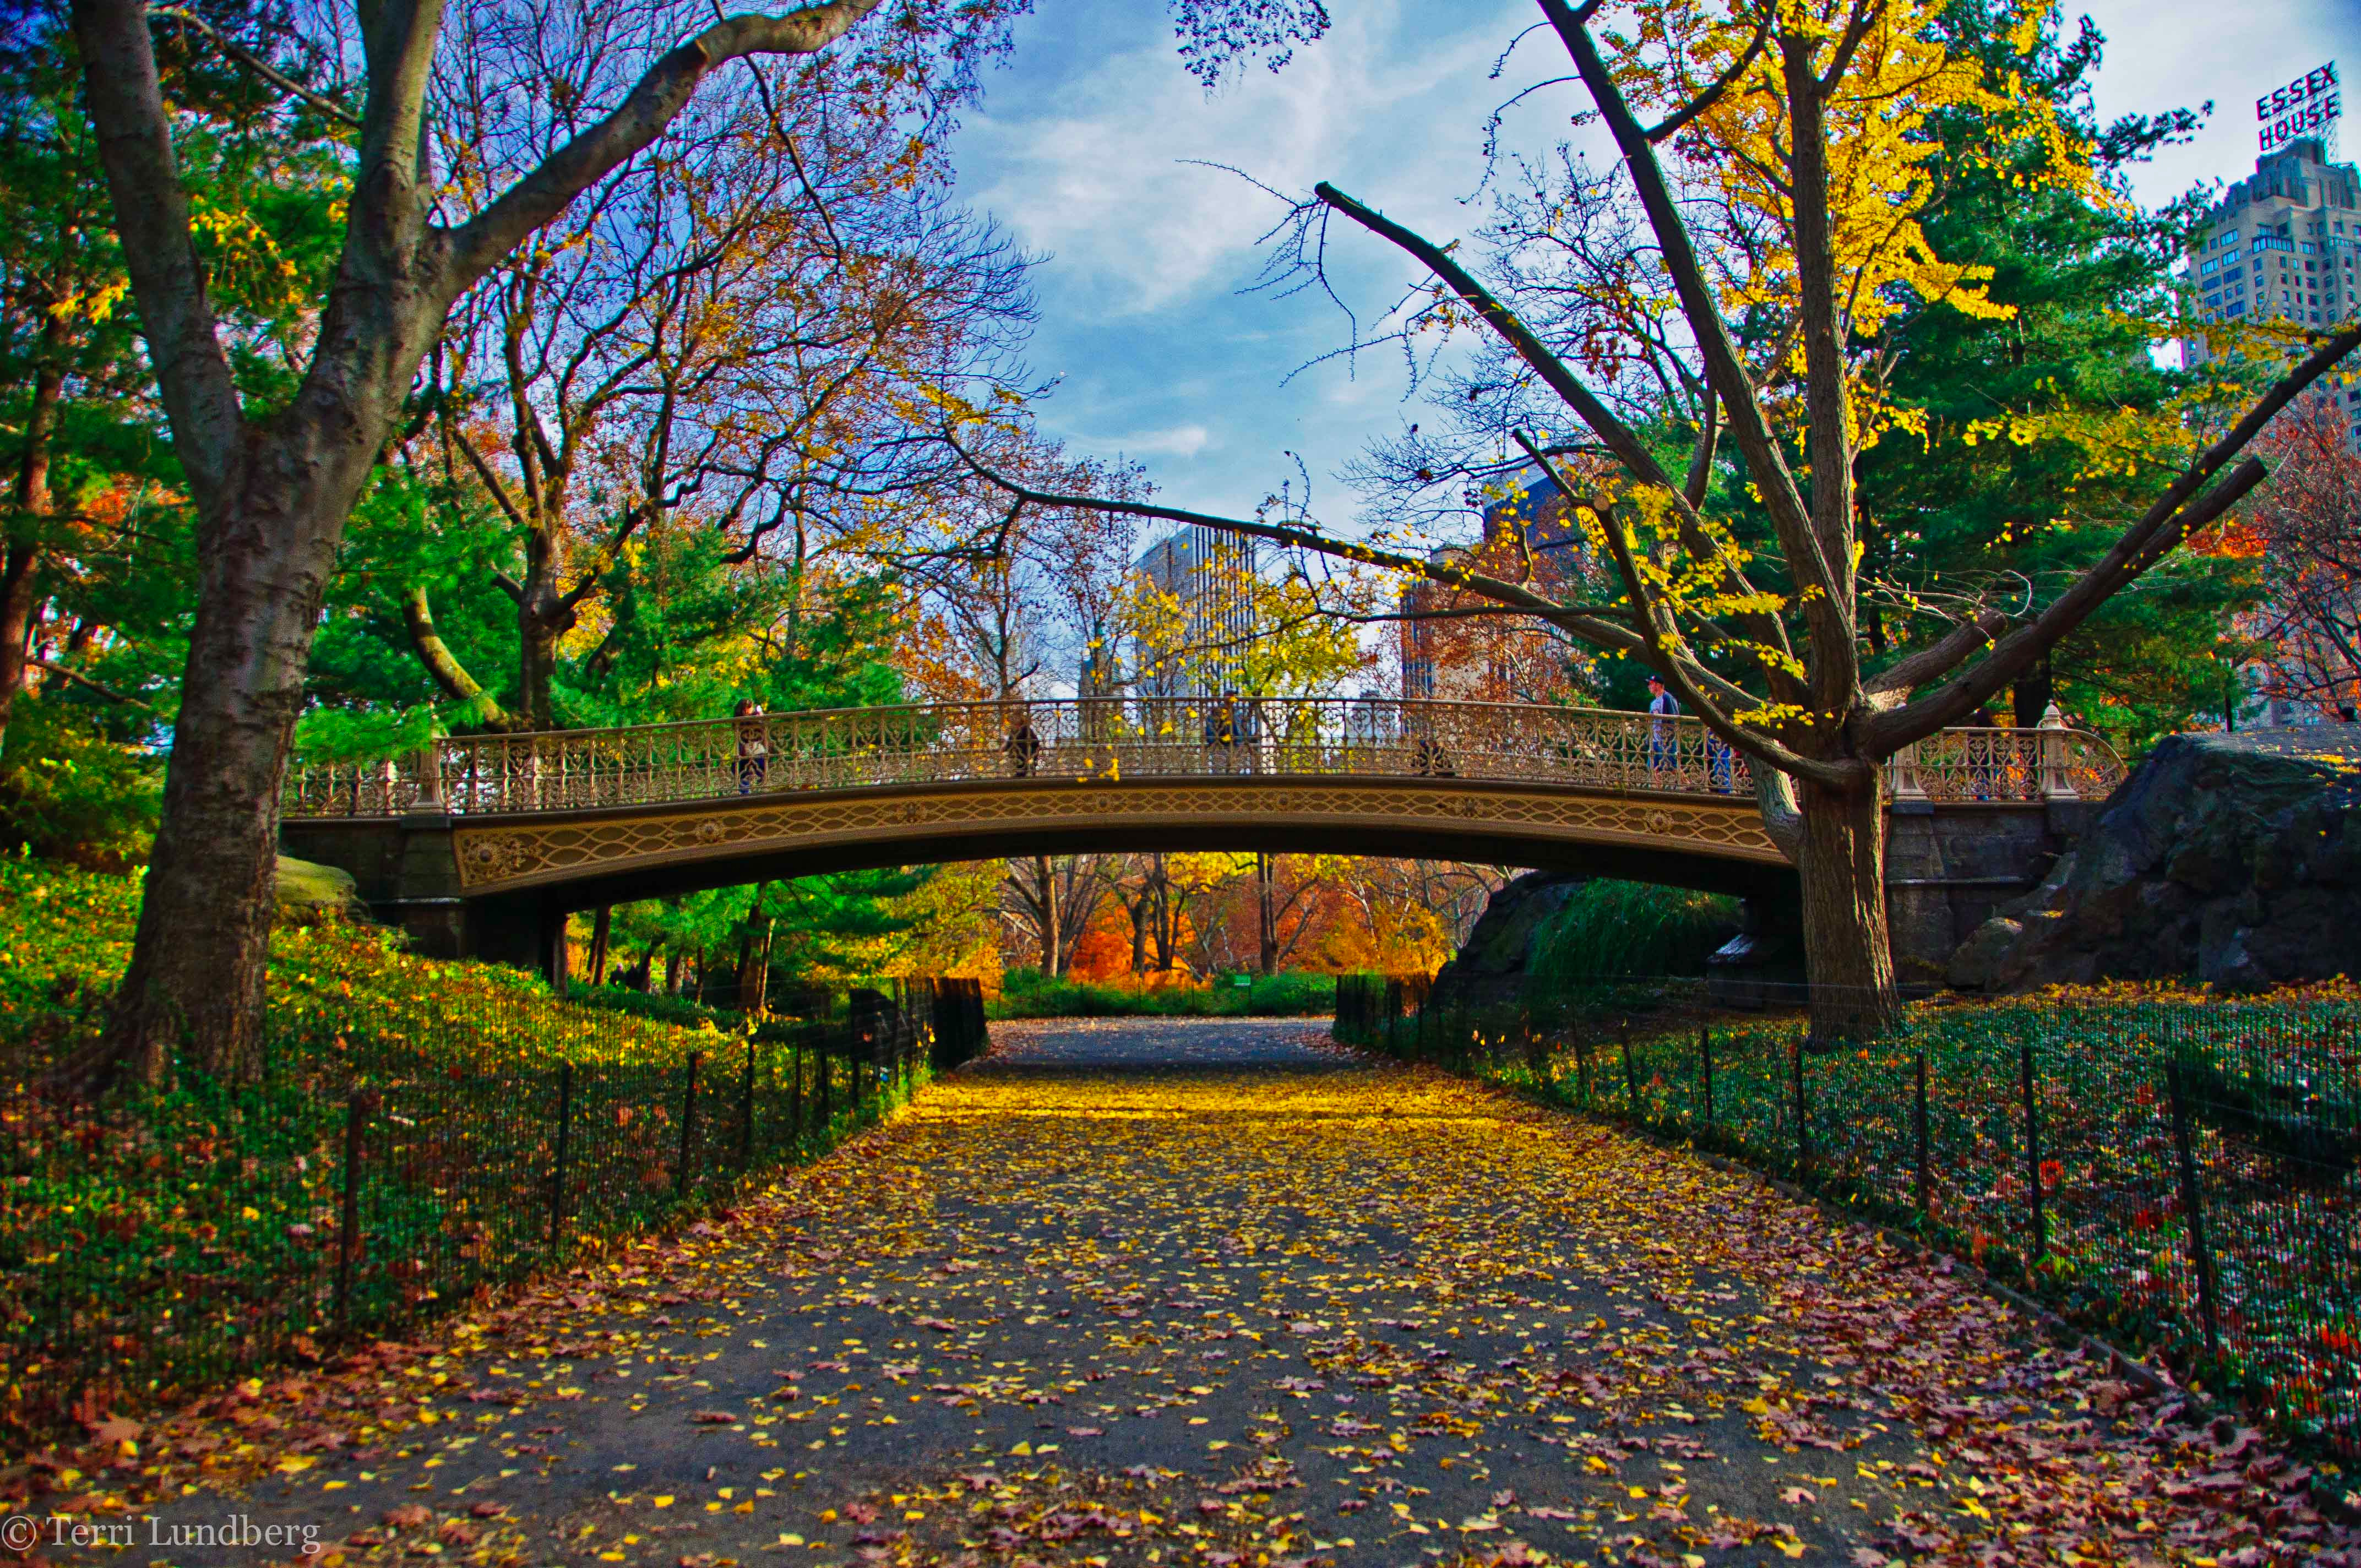 Fall Foliage in Central Park over Gothic Bridge